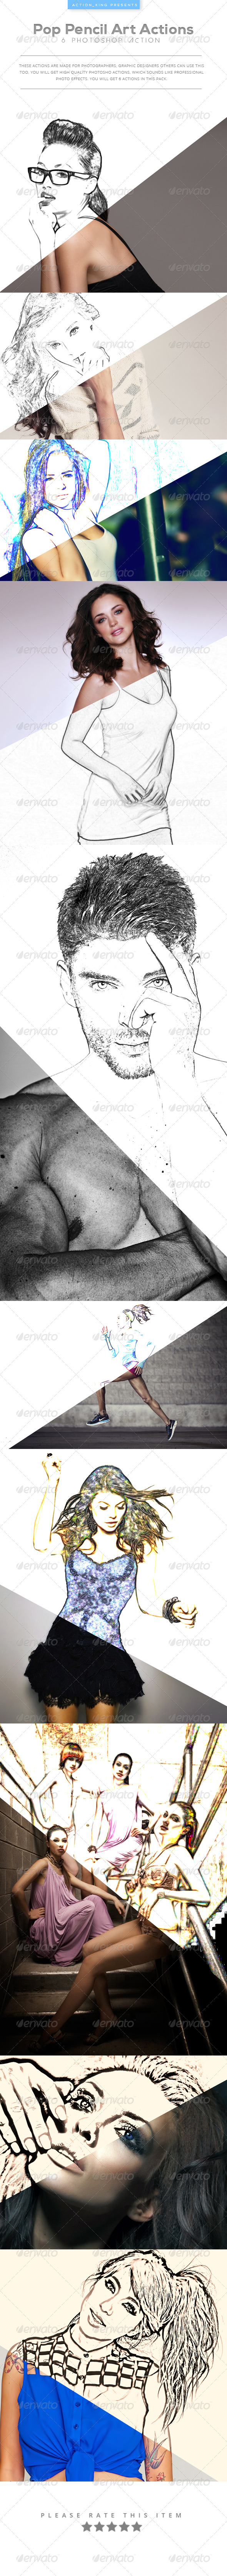 GraphicRiver Pop Pencil Art Actions 8207034